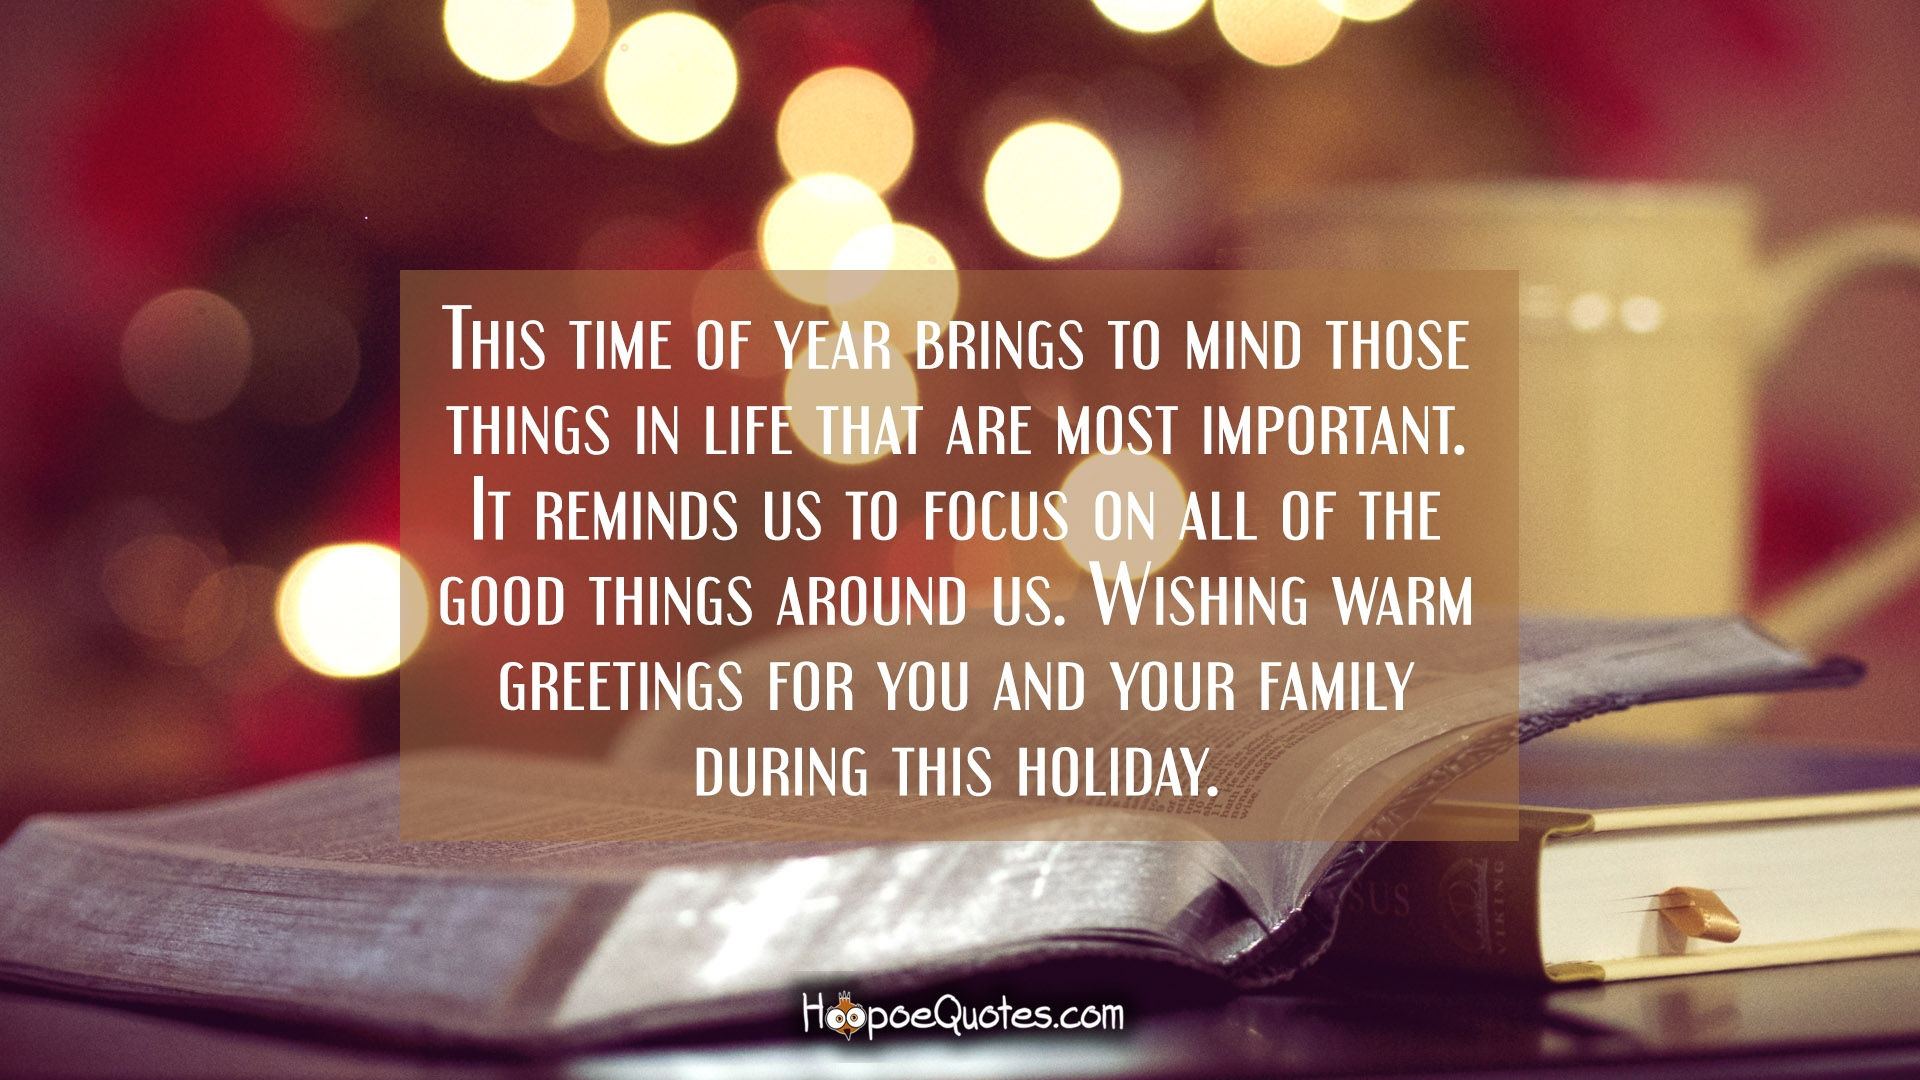 This time of year brings to mind those things in life that are most important. It reminds us to ...